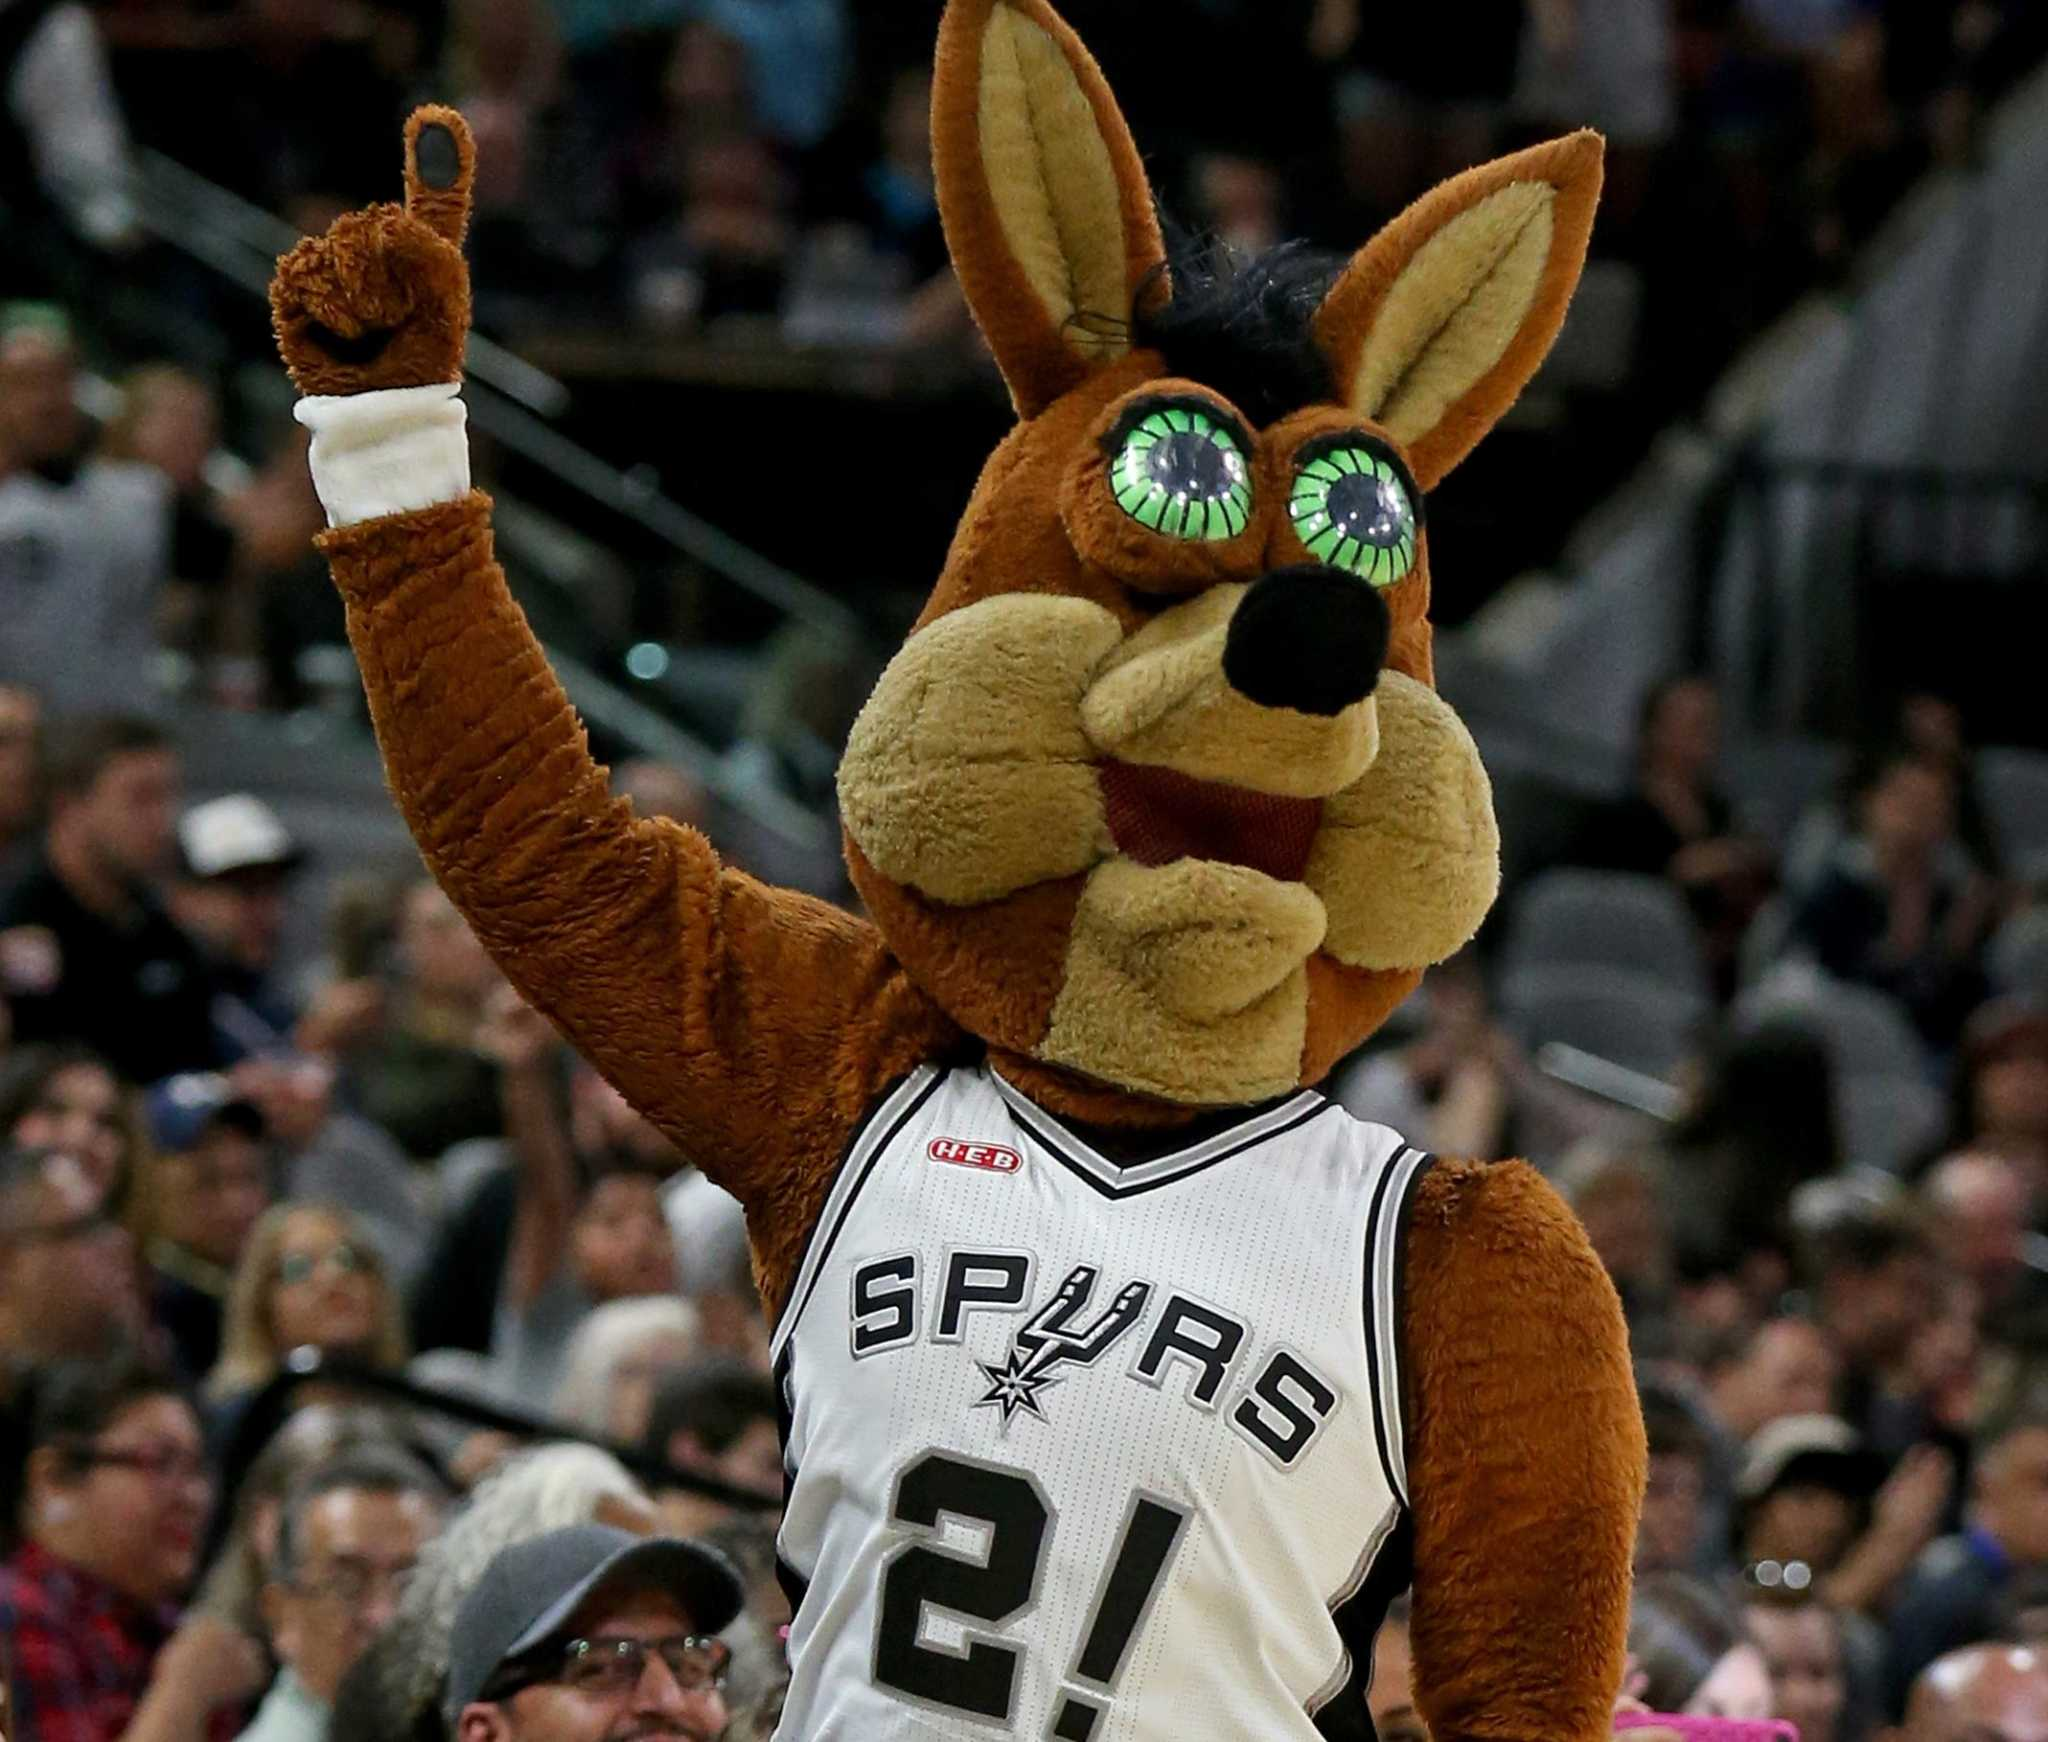 Sports Mascots Have Long History Of Entertaining In San